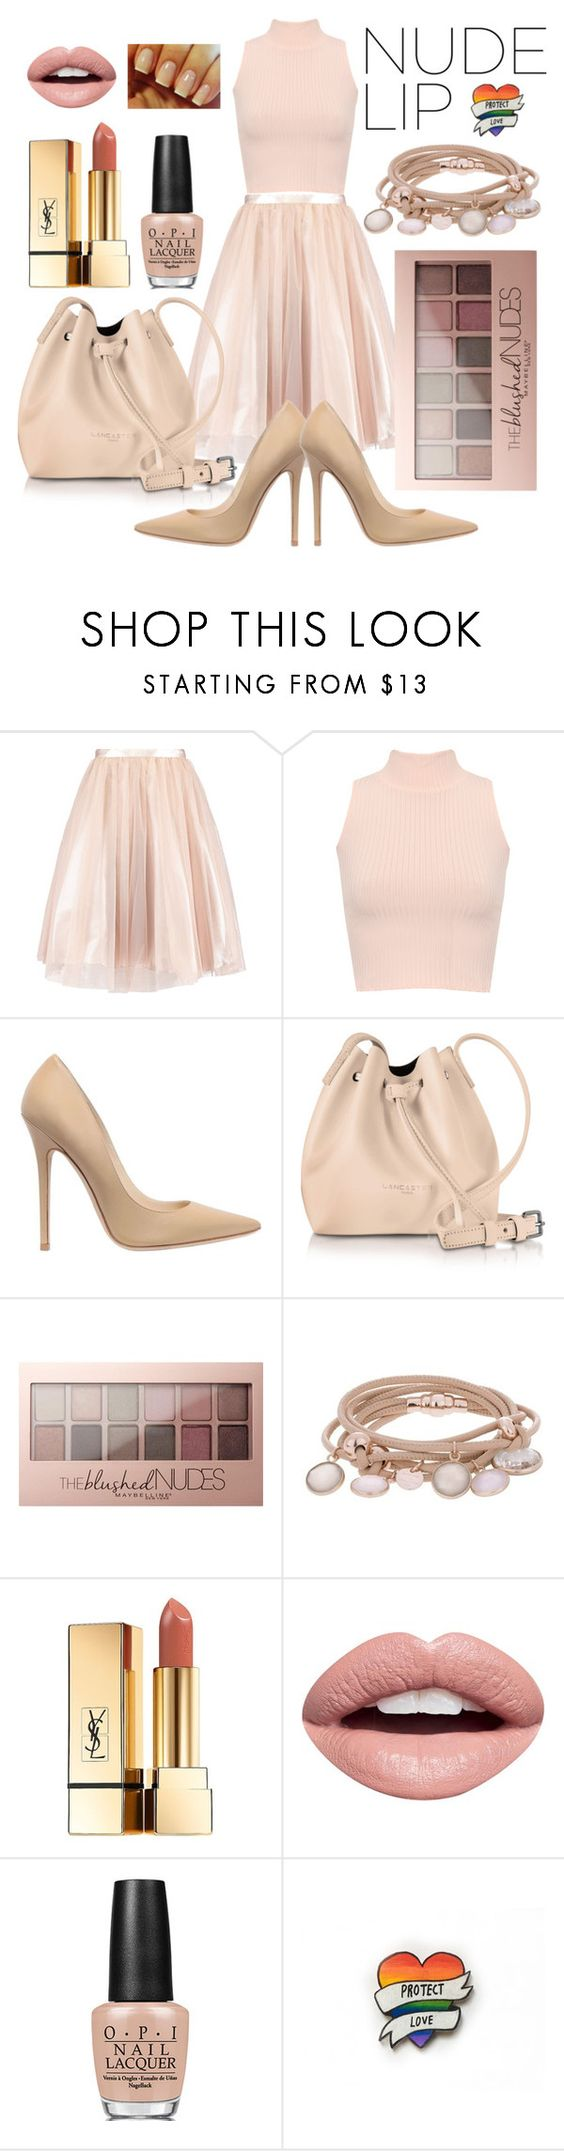 """""""Perfect Nude Lips"""" by ichaaica ❤ liked on Polyvore featuring beauty, WearAll, Jimmy Choo, Lancaster, Maybelline, Marjana von Berlepsch, Yves Saint Laurent, Nevermind and OPI"""